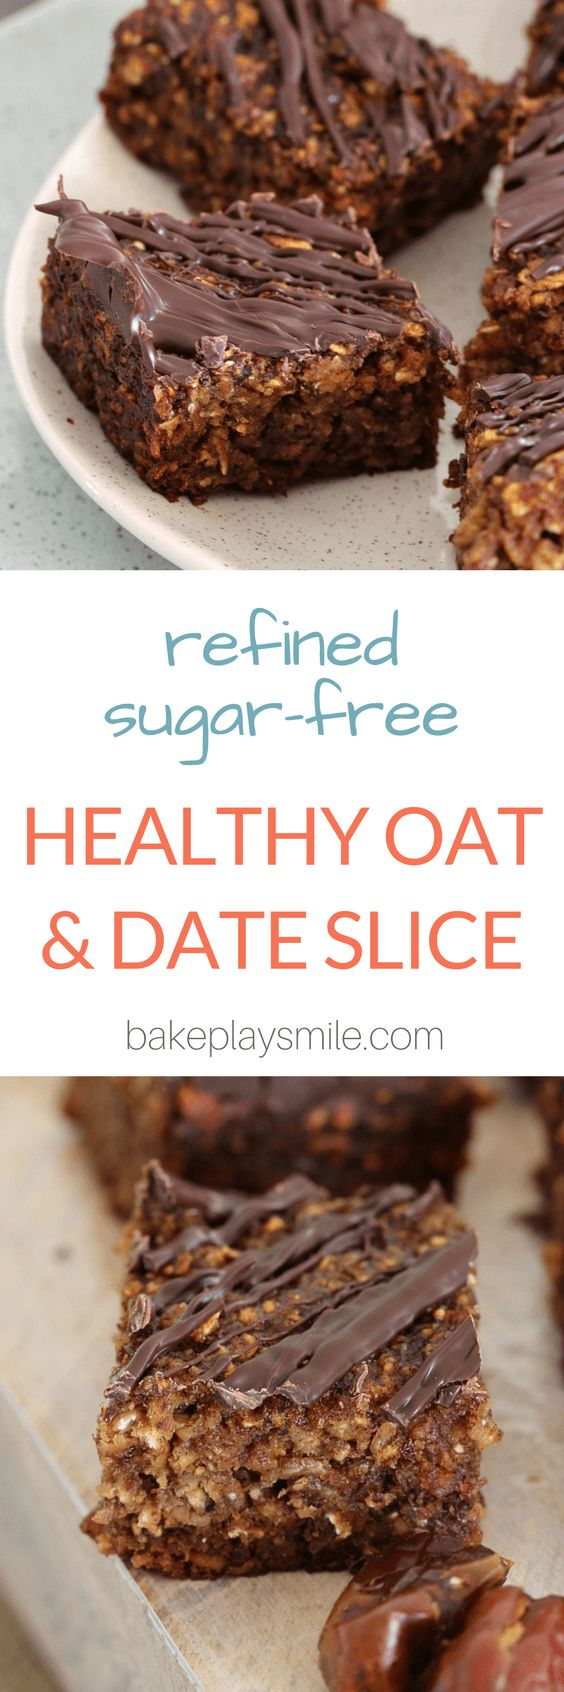 This Healthy Oat and Date Slice is so quick and easy to prepare! Filled with oats, chia seeds and dates… it's the perfect clean eating treat! #healthy #oat #date #chia #slice #bars #easy #recipe #healthyeating #cleaneating #sugarfree #thermomix #conventional #best #lunchbox